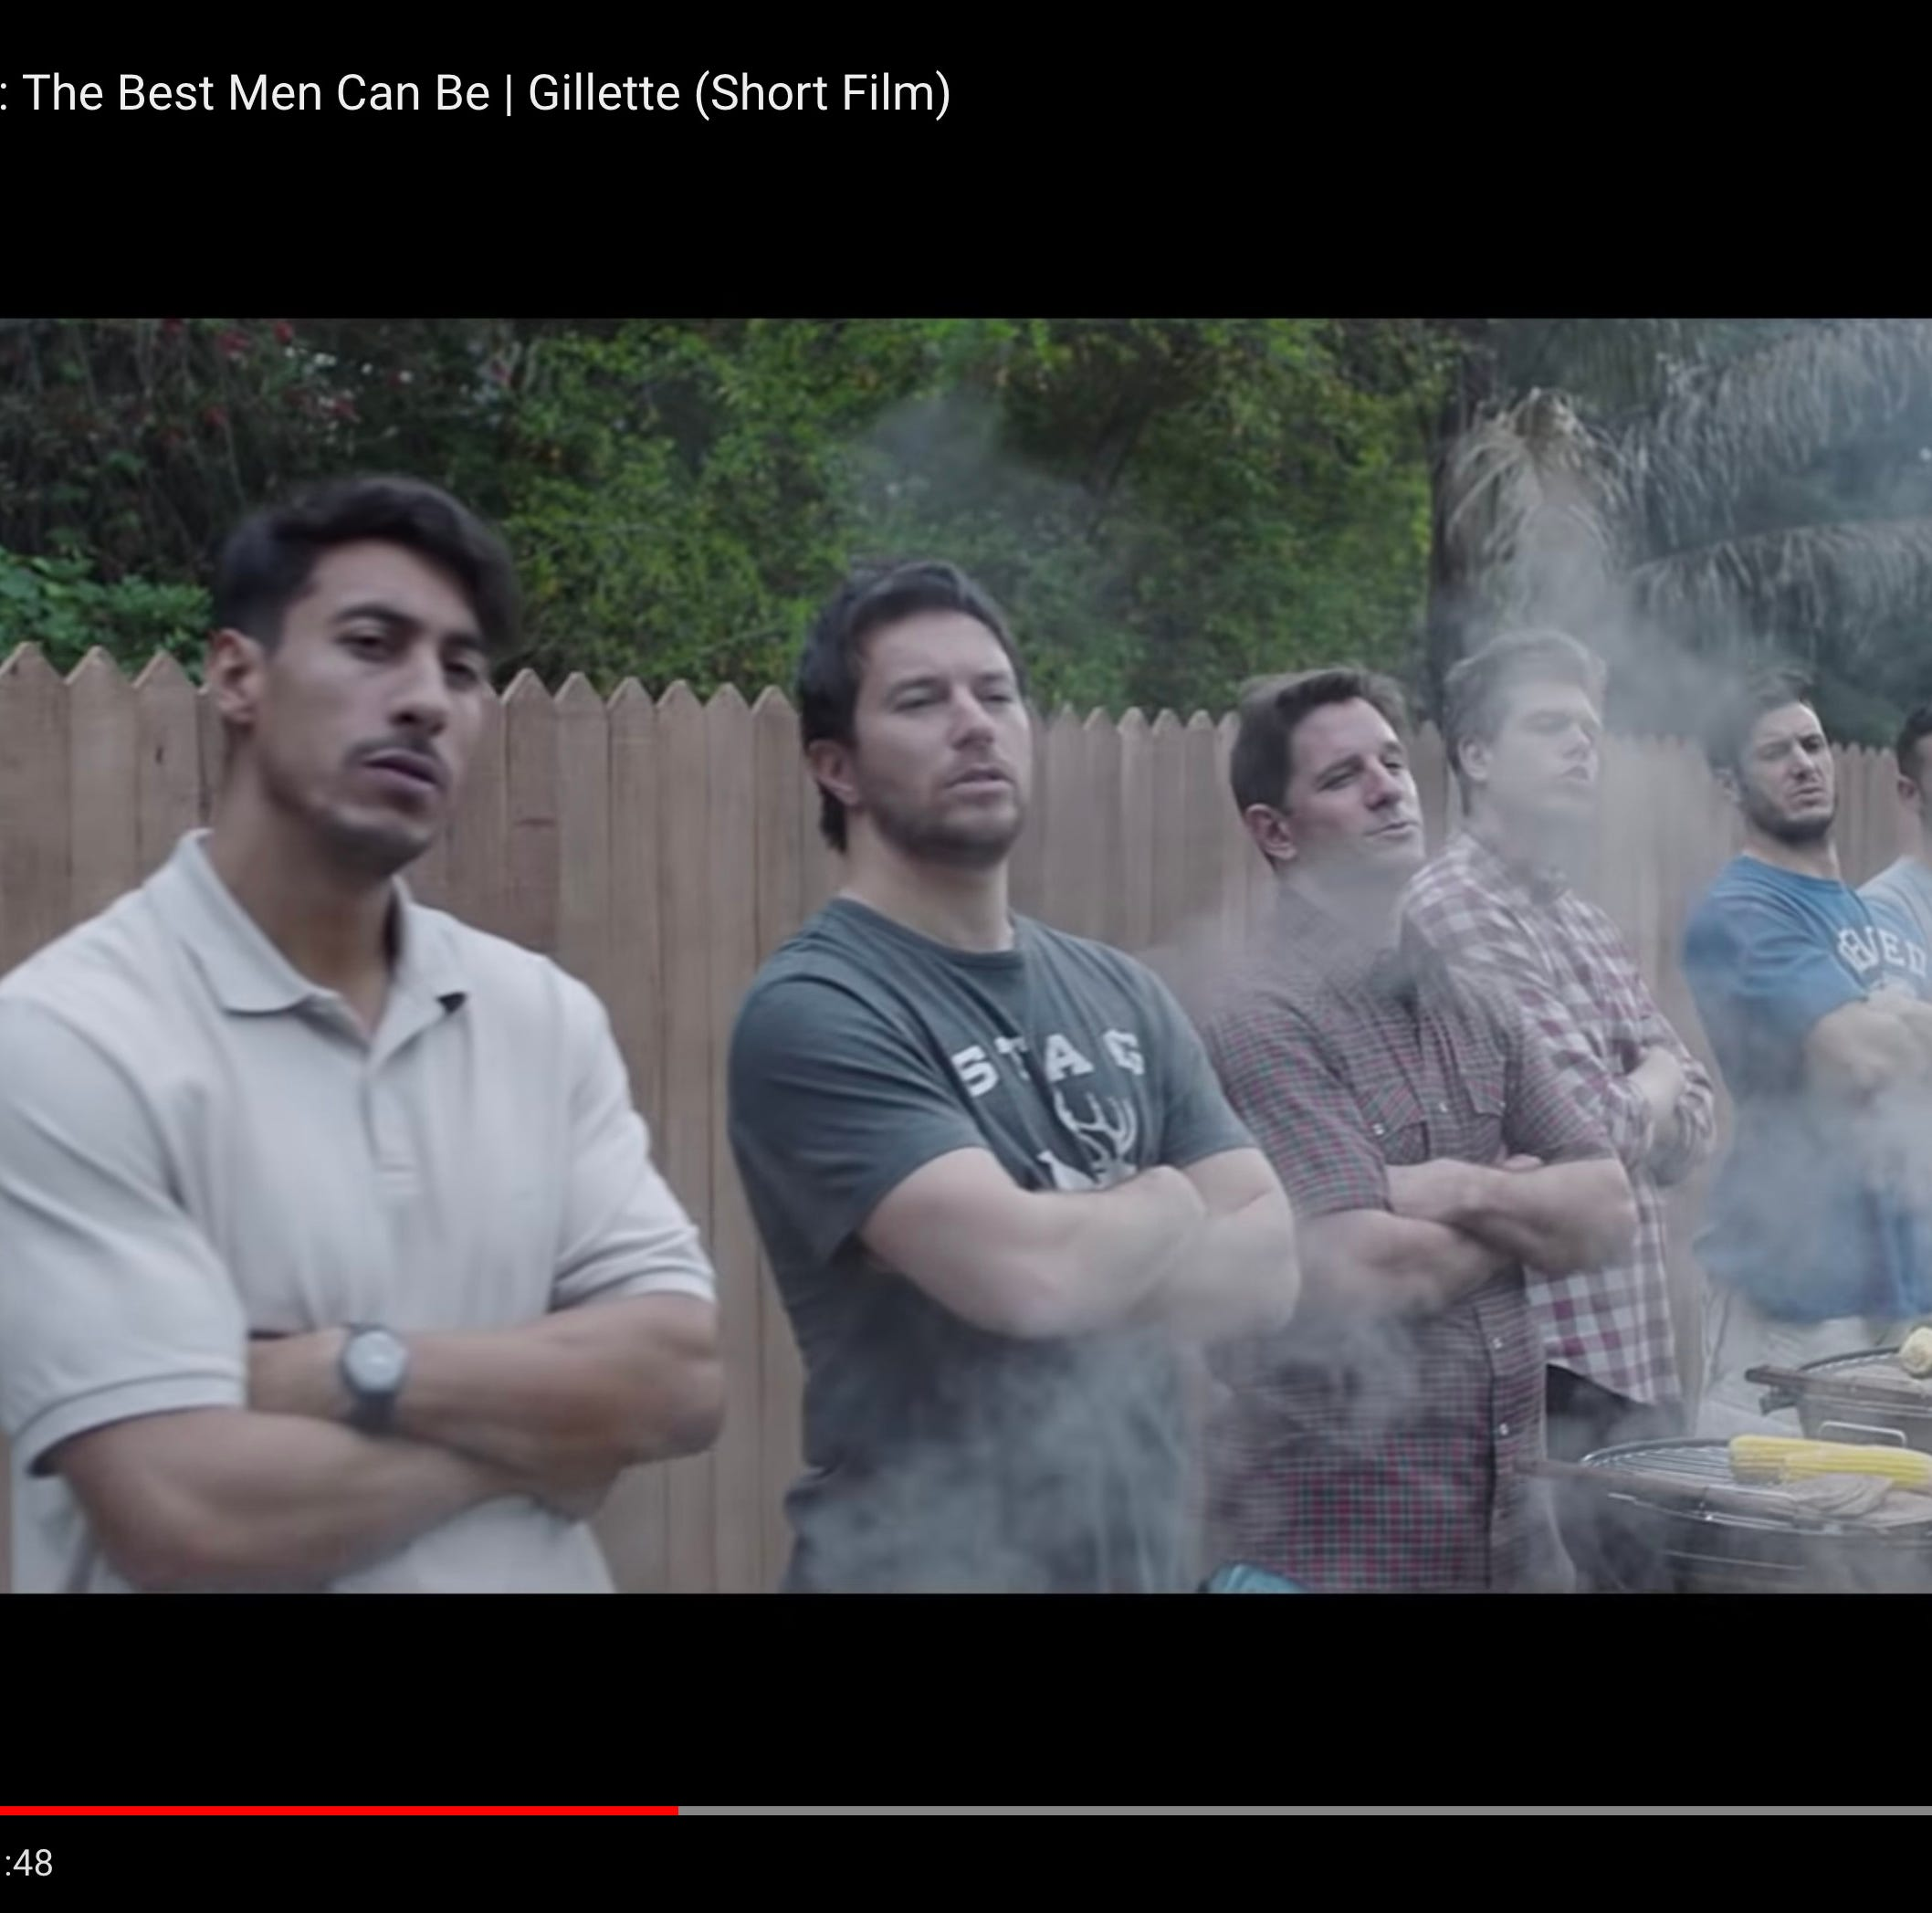 Stingl: No argument from me over the viral Gillette ad that says we men can be better